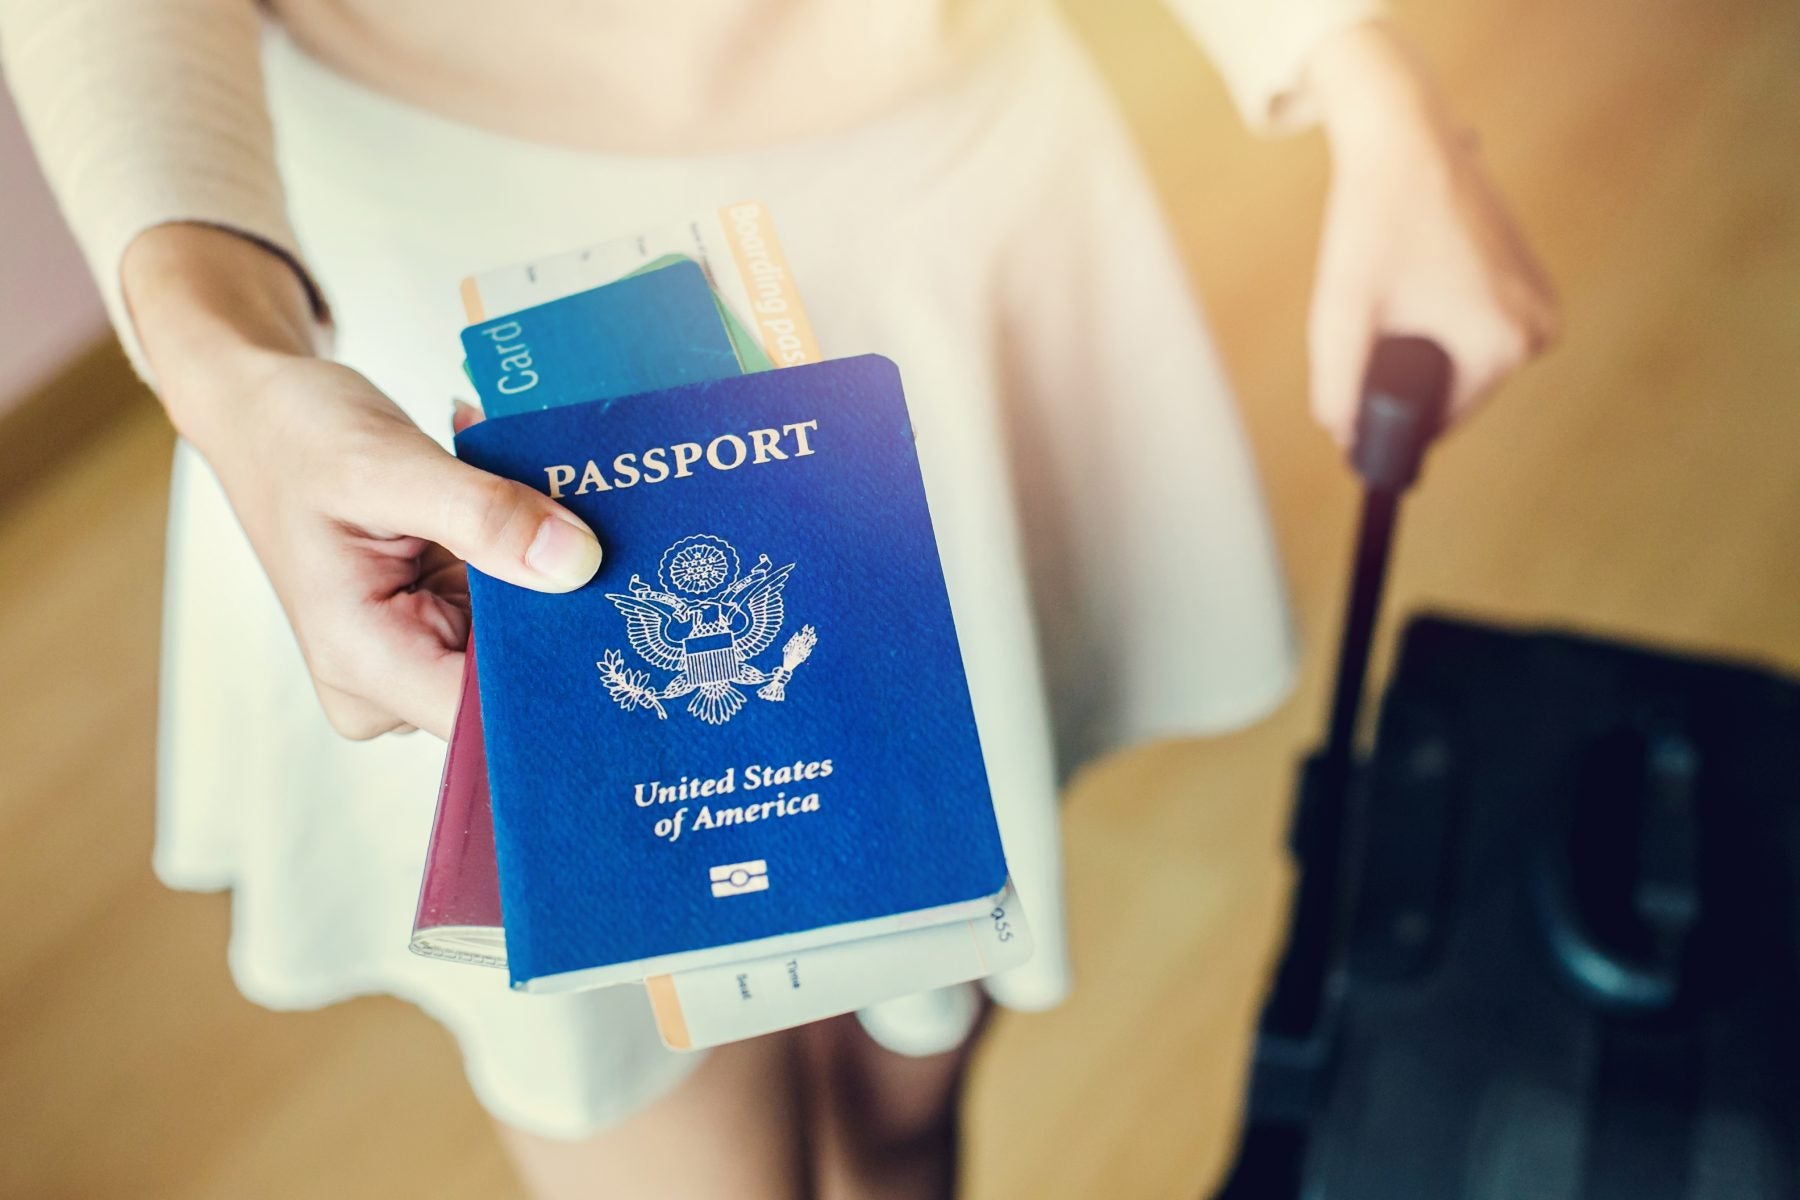 You Could Be Denied Entry to a Foreign Country With a Valid US Passport